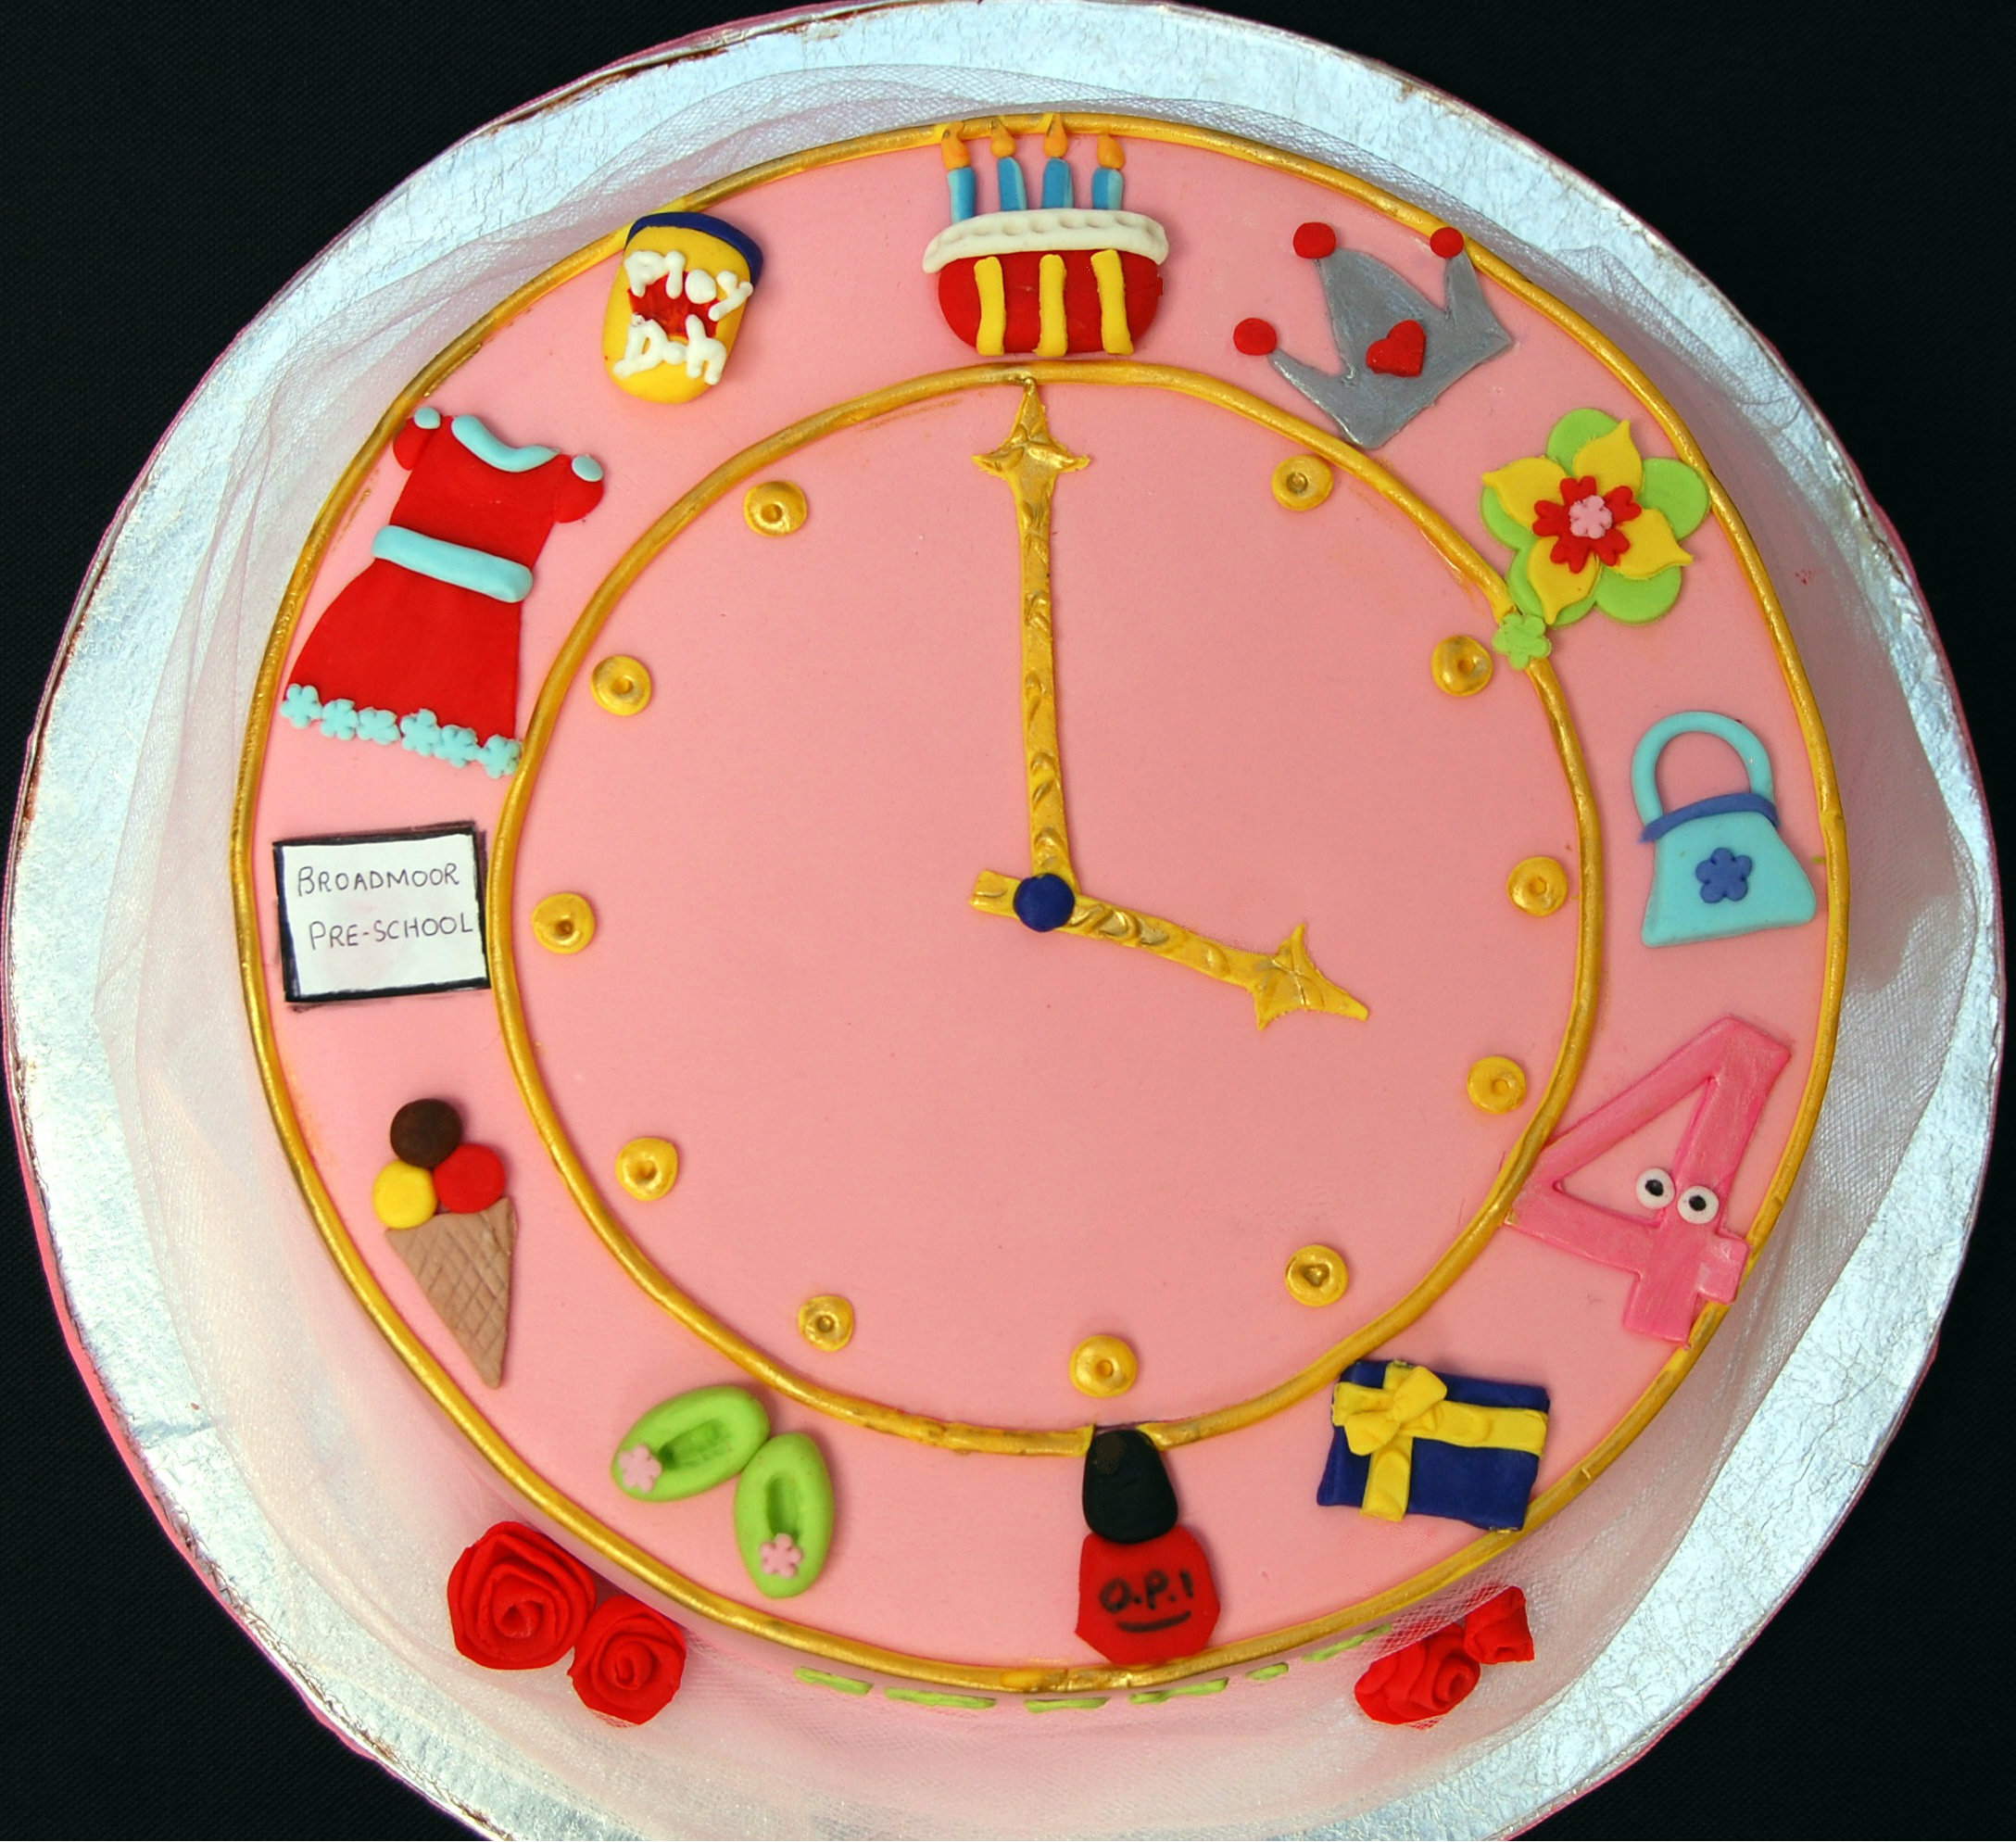 Birthday clock for a 4 year old :)